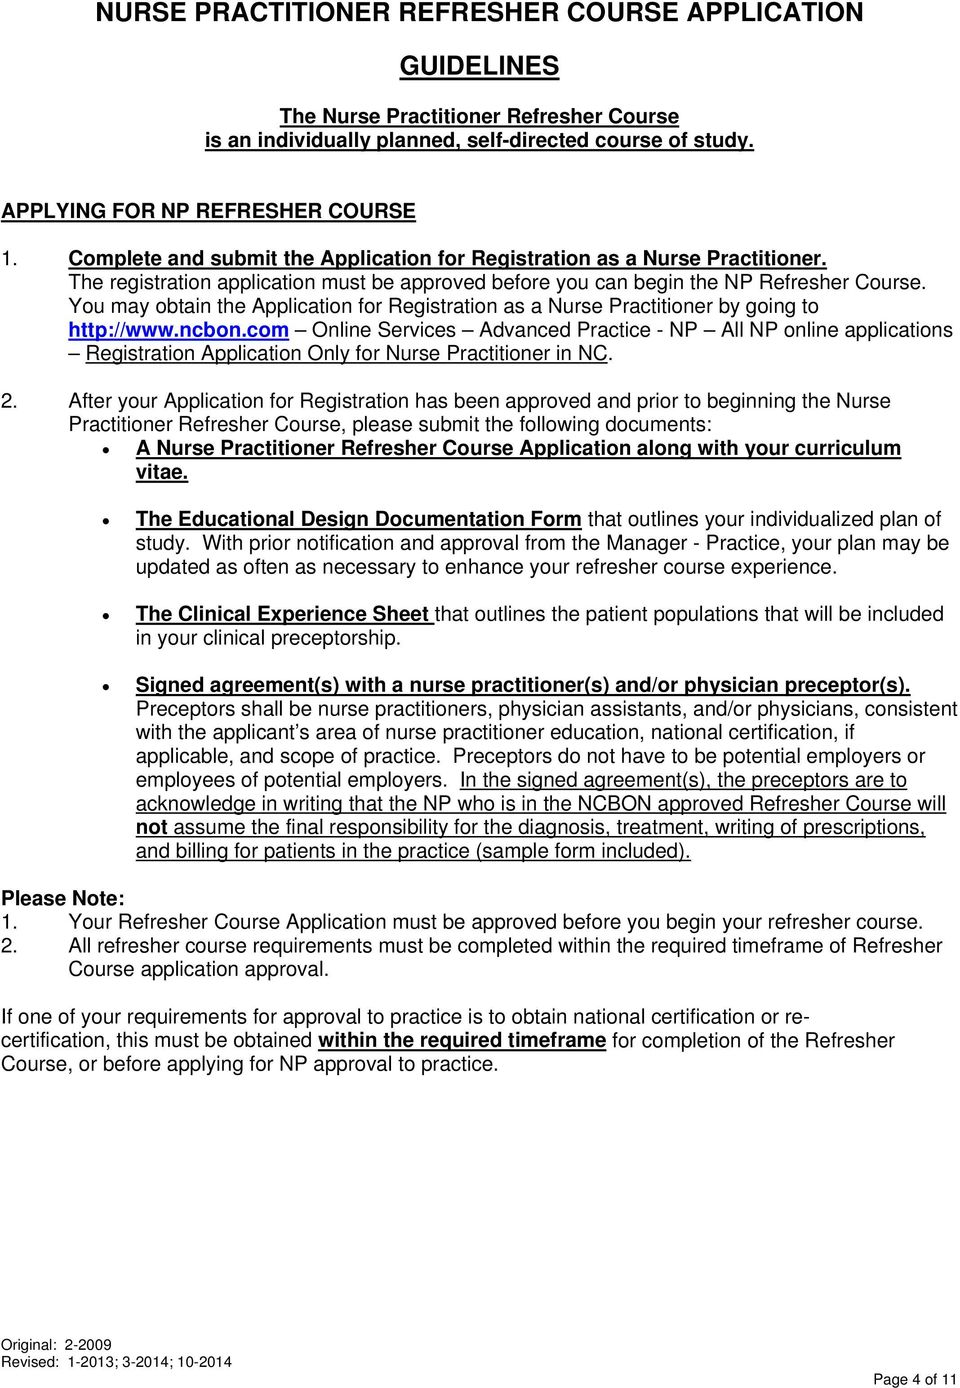 Nurse practitioner refresher course application packet pdf you may obtain the application for registration as a nurse practitioner by going to http 1betcityfo Images